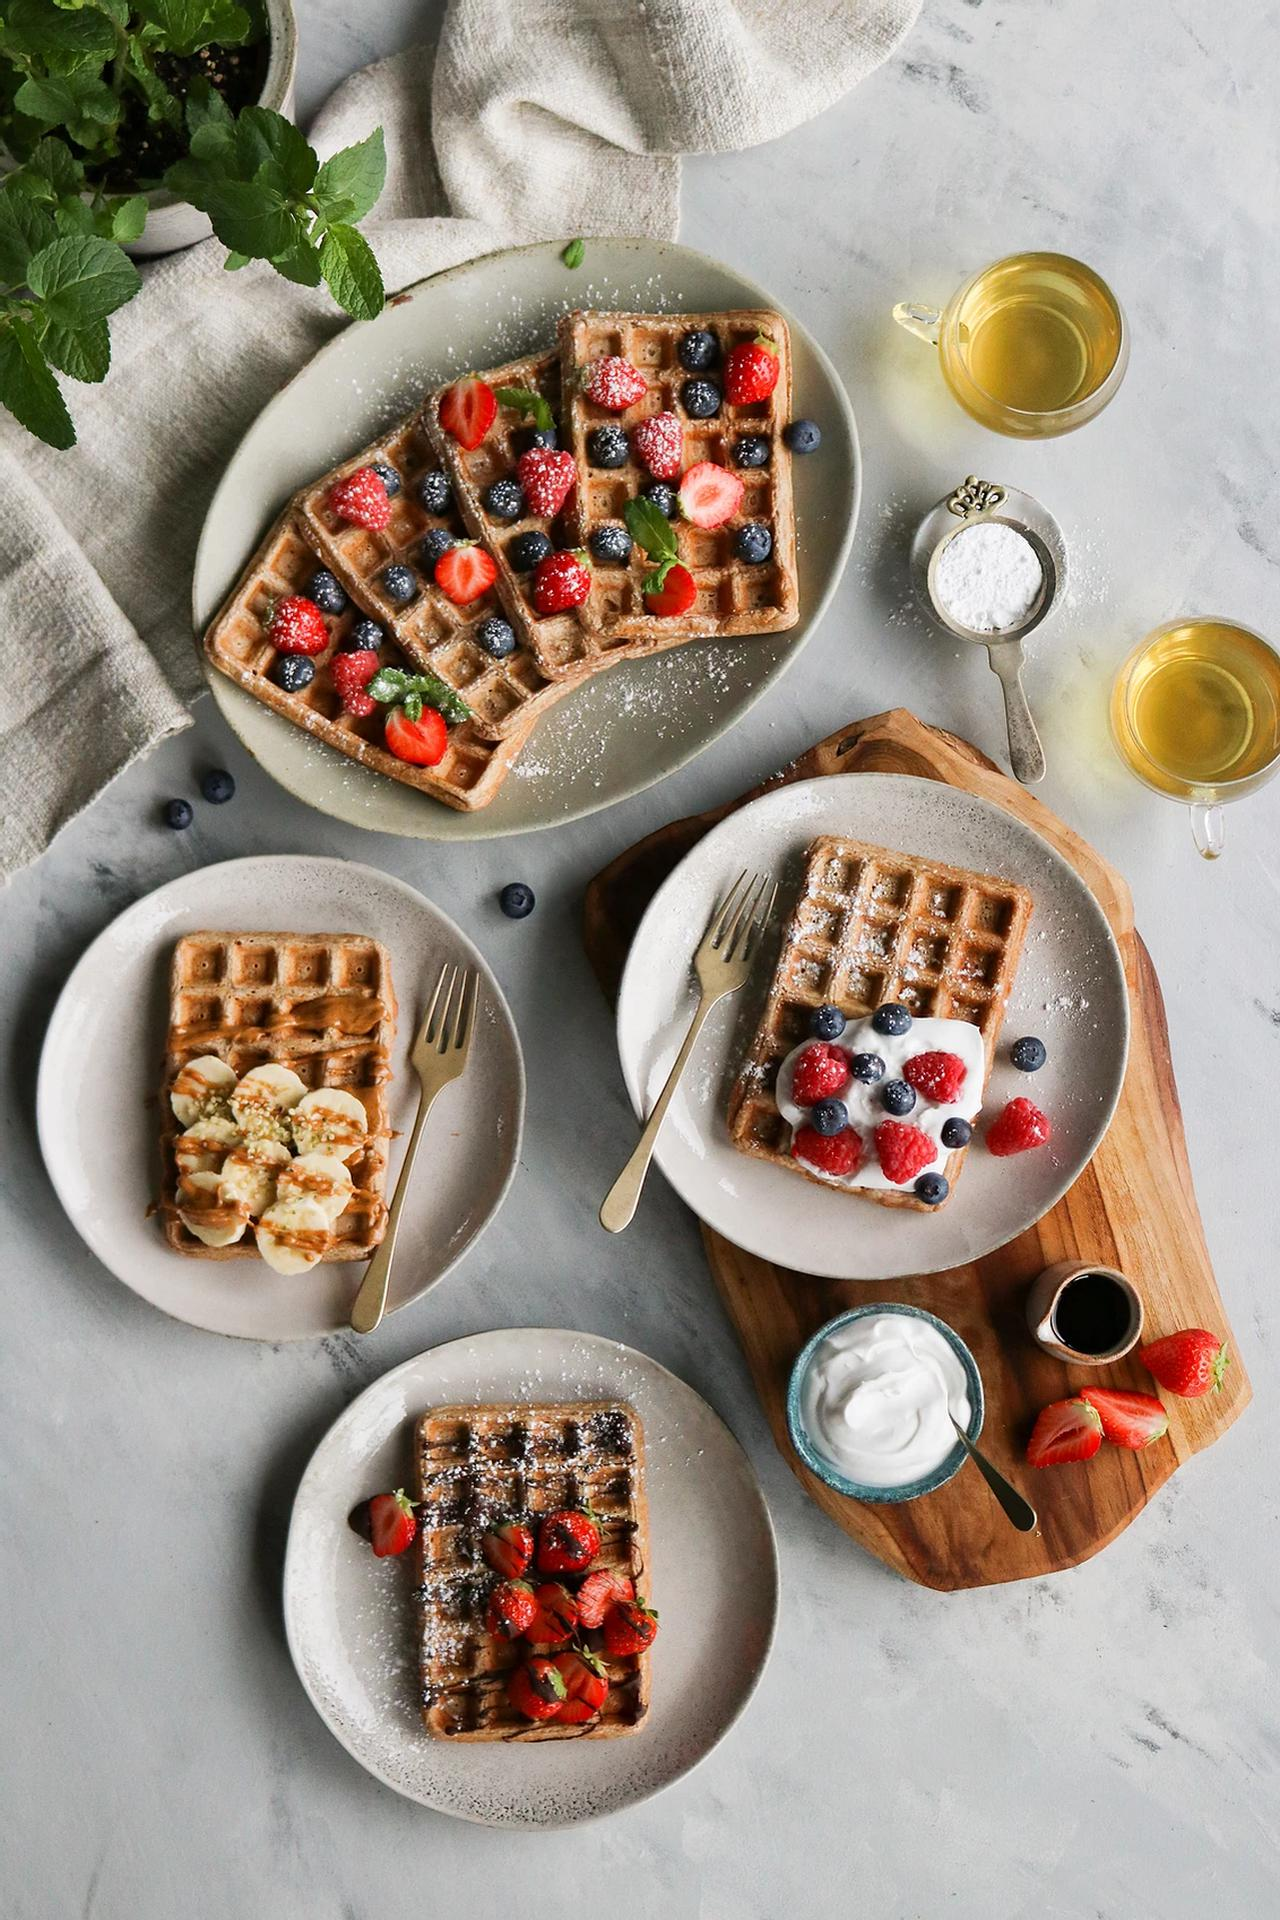 Main image of Vegan Breakfast Waffles